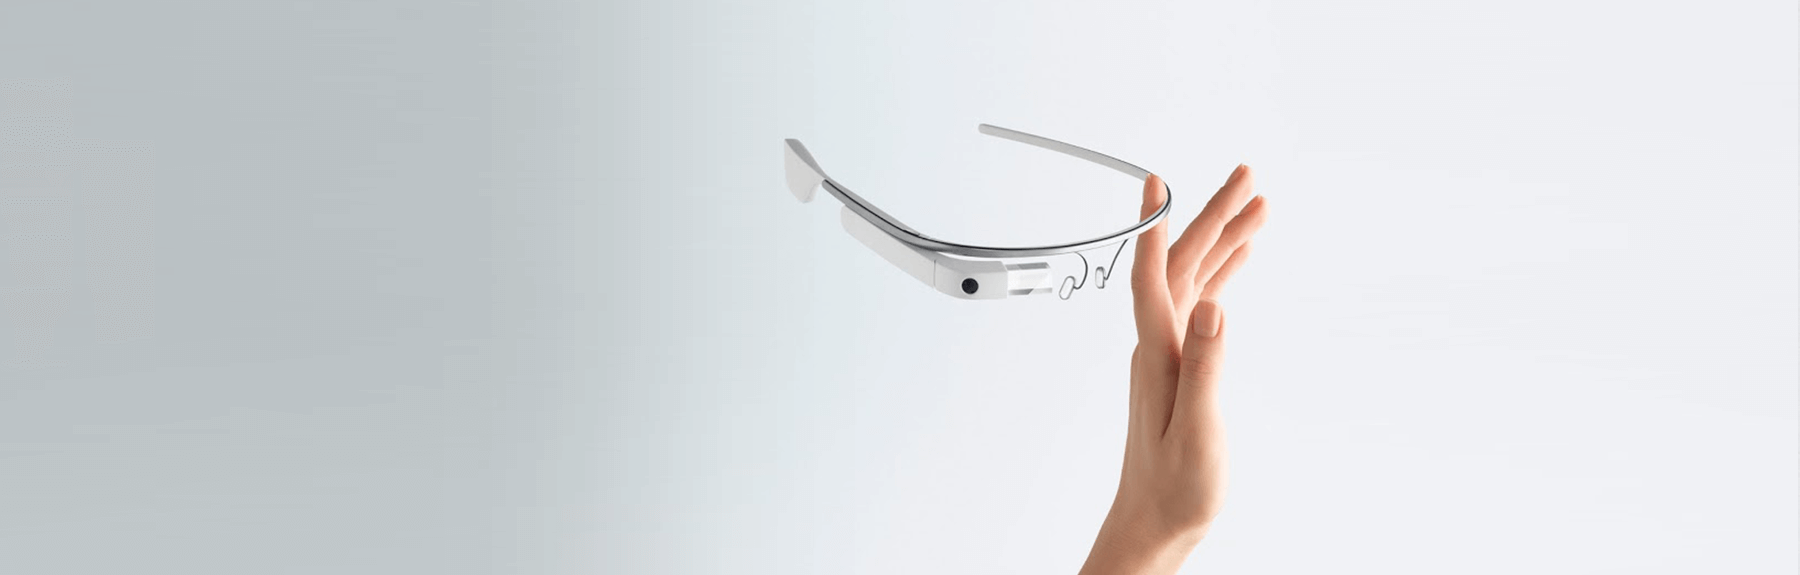 prototyping-google-glass-apps